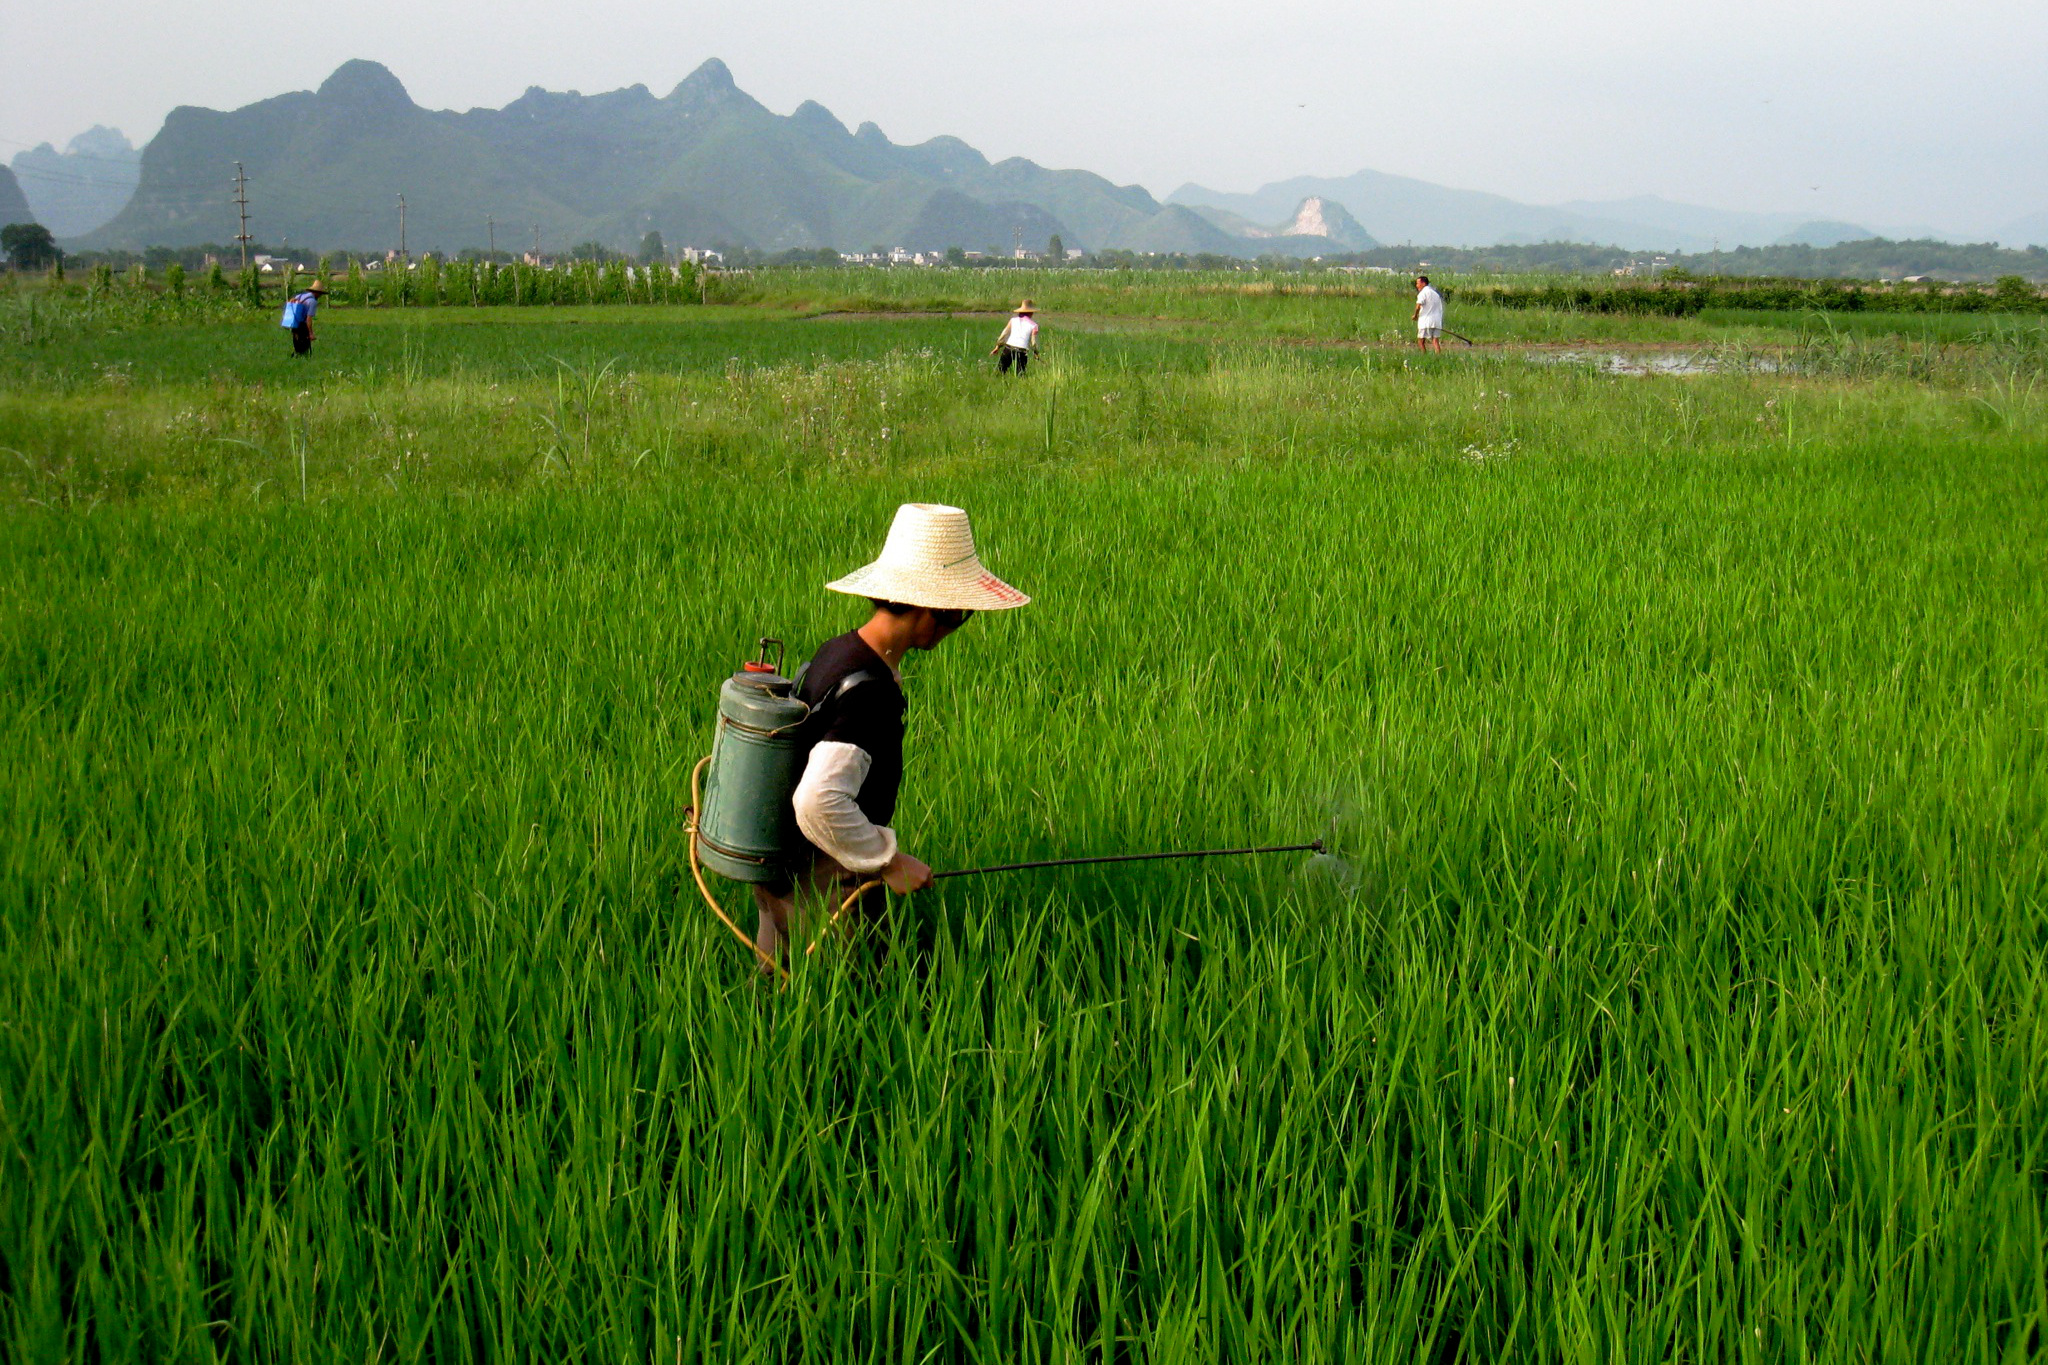 A farmer applies pesticide to a field in China